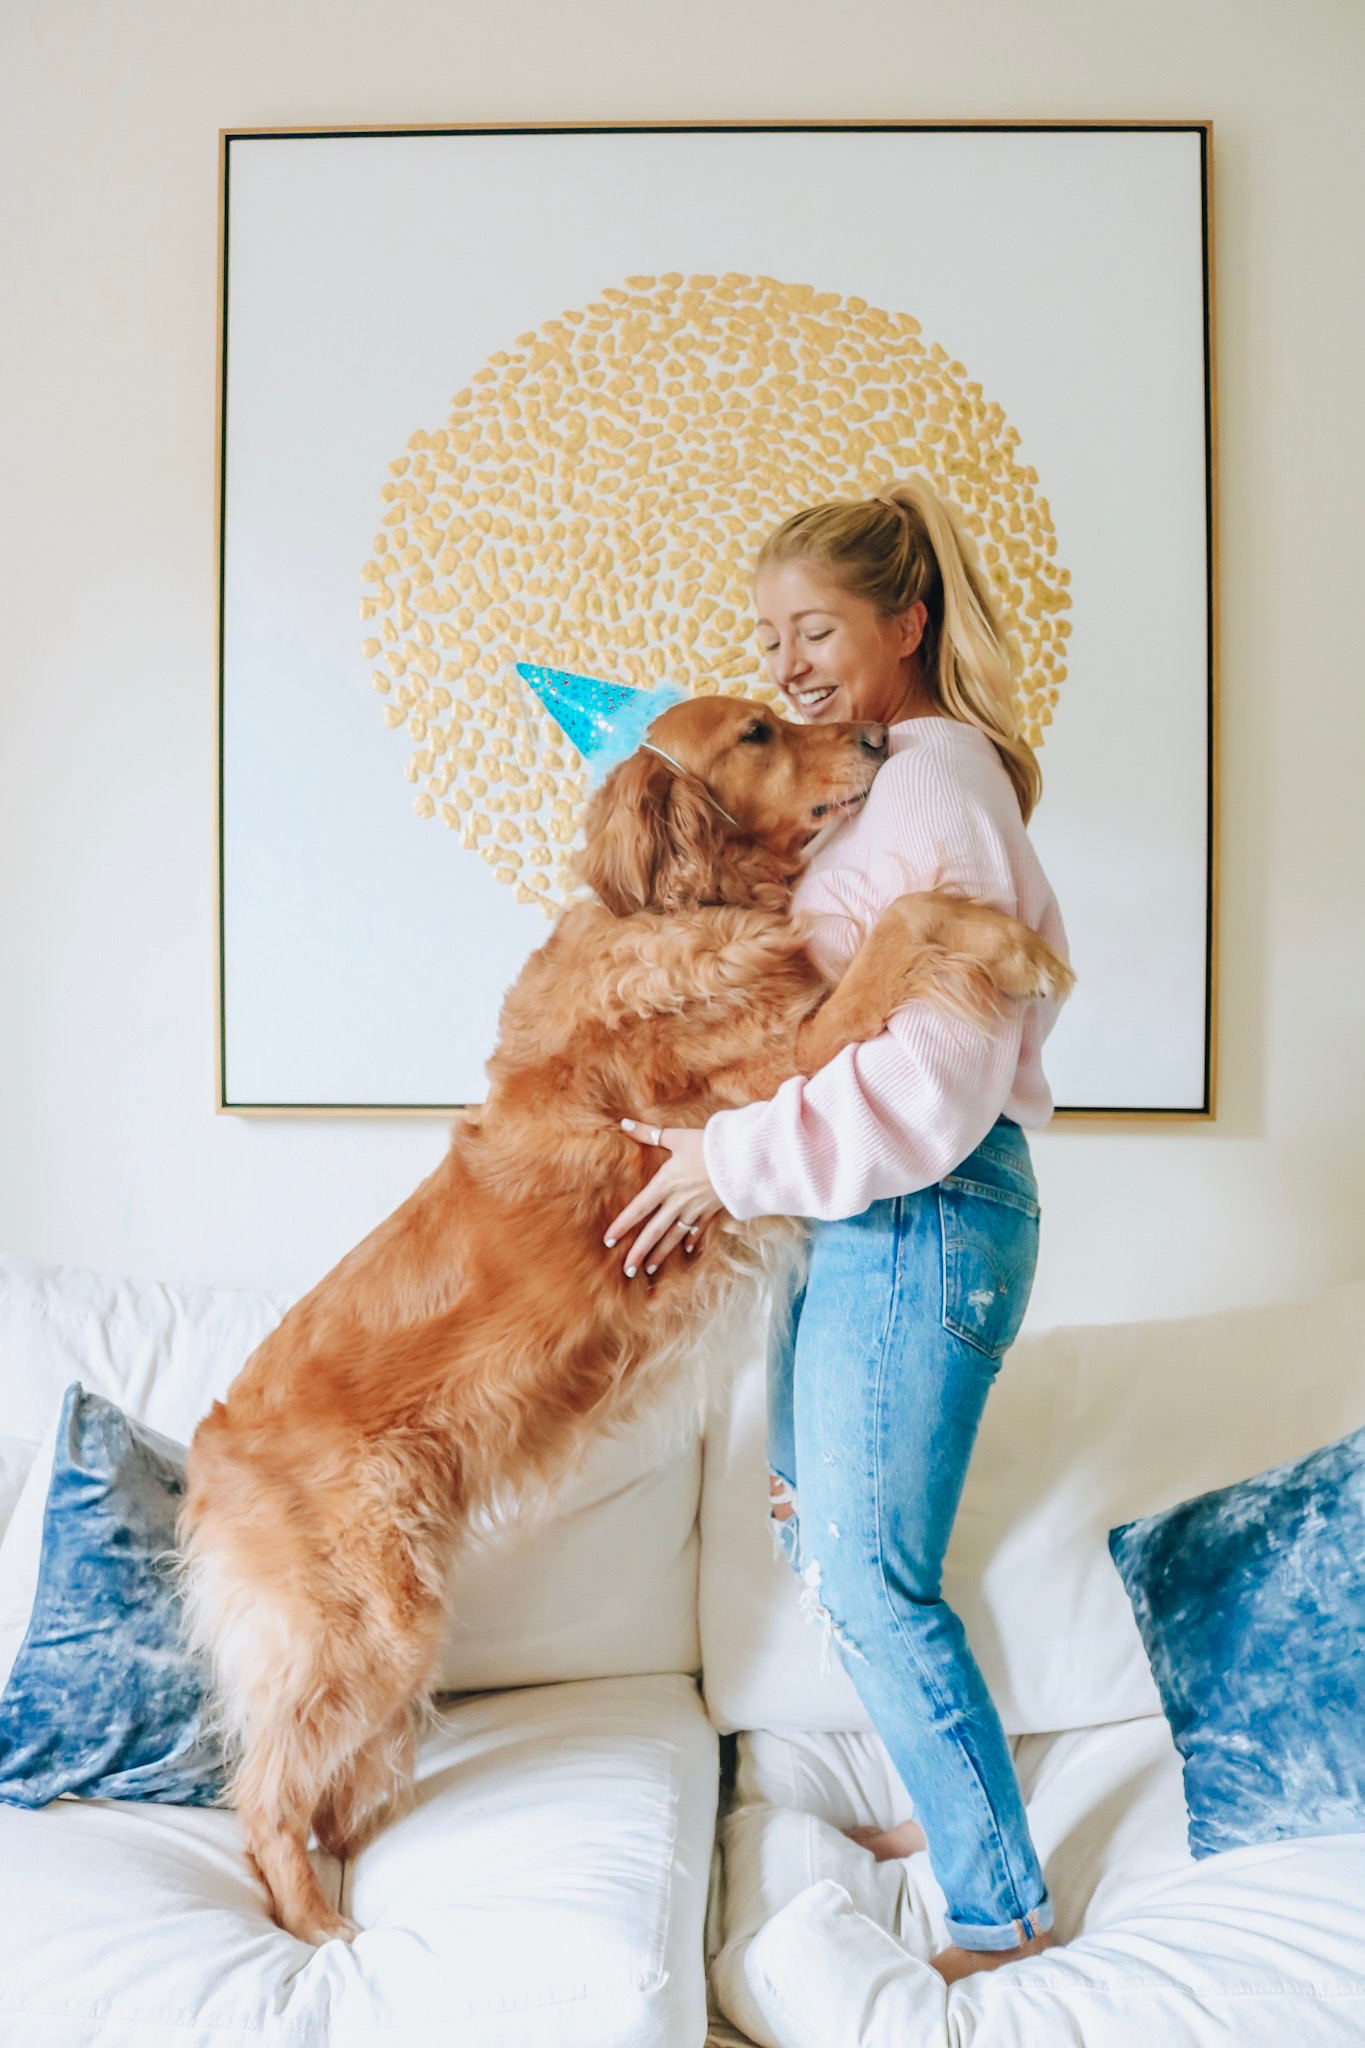 SHOP THE POST Sweater Similar Jeans Rug Coffee Table Picture High Fashion Home No Link Sorry Dog Birthday Cake Three Bakery Welcome